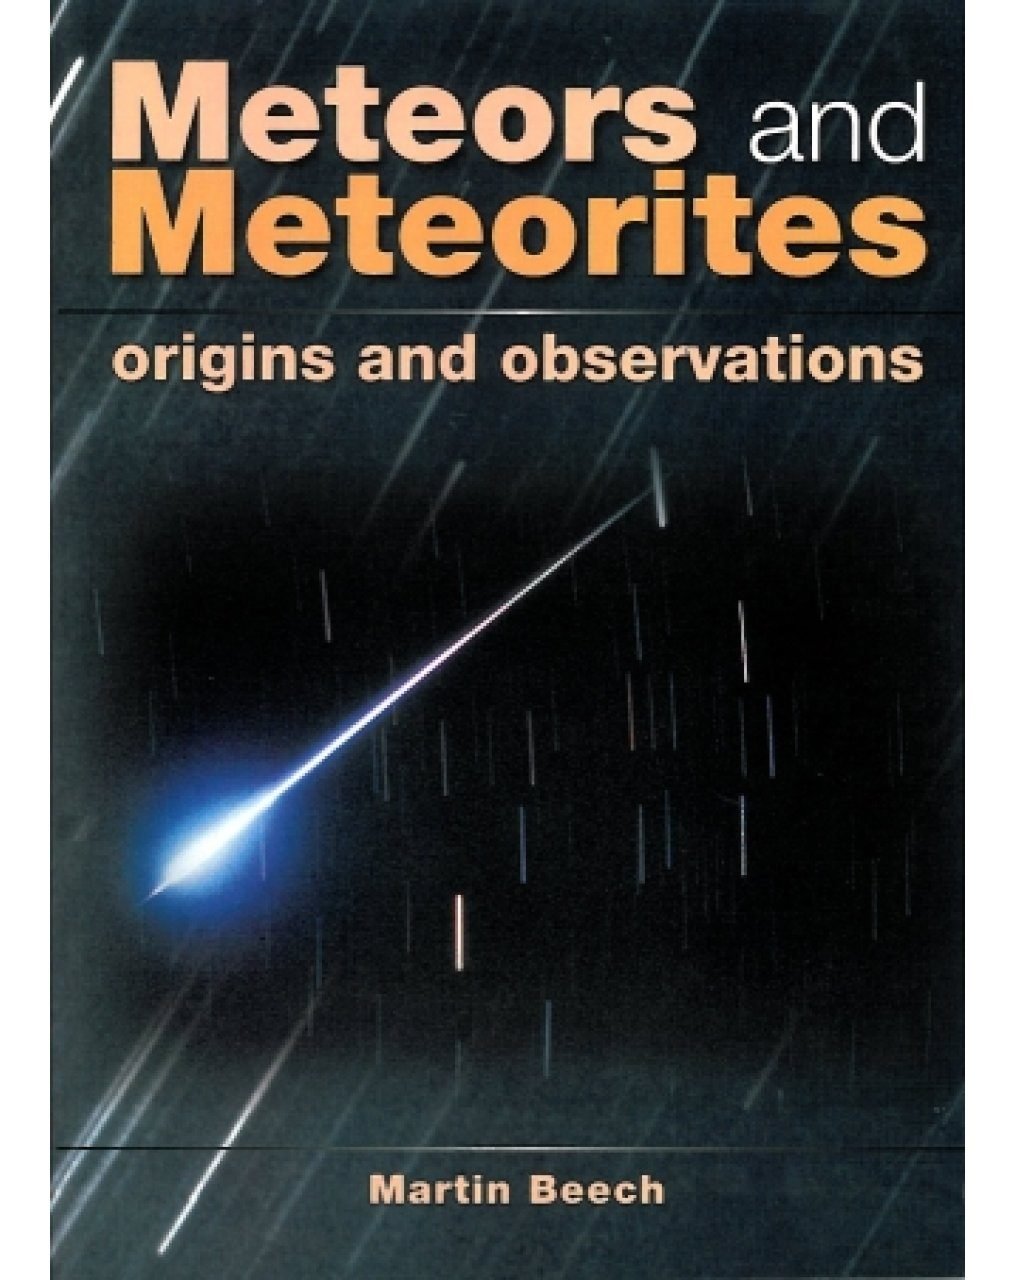 Meteors and Meteorites: Origins and Observations